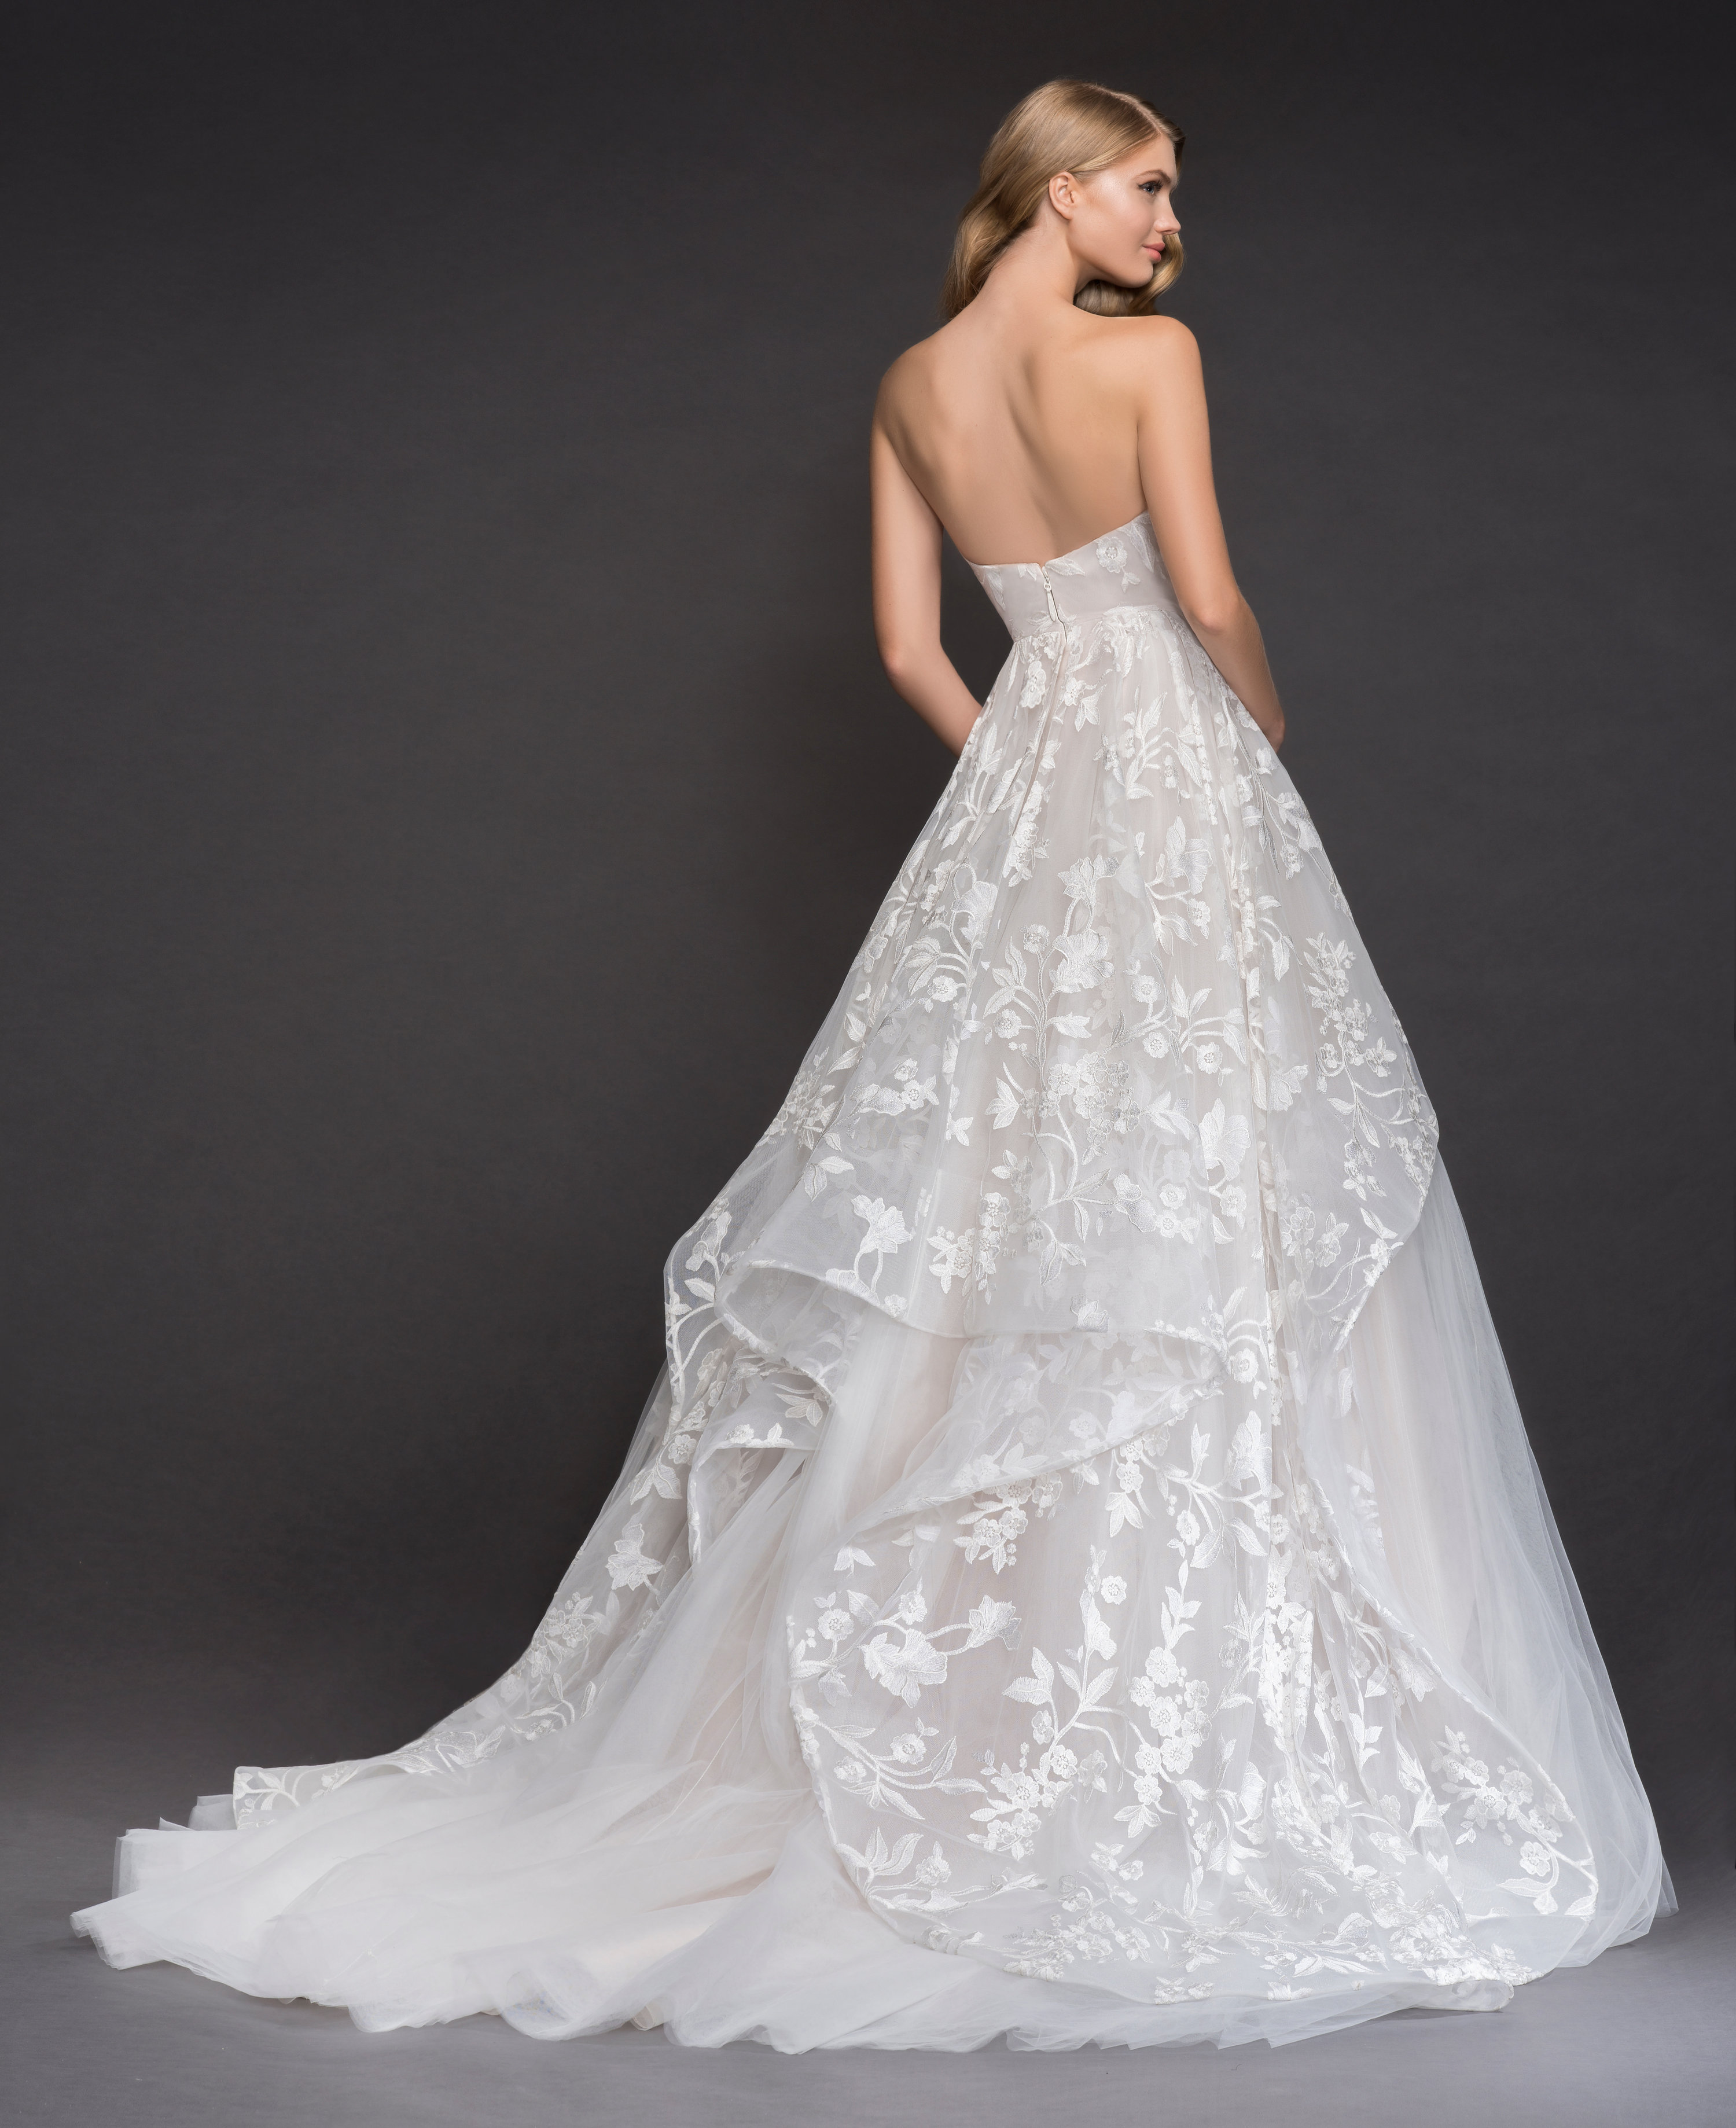 Bridal gowns and wedding dresses by jlm couture style for 1800 style wedding dresses